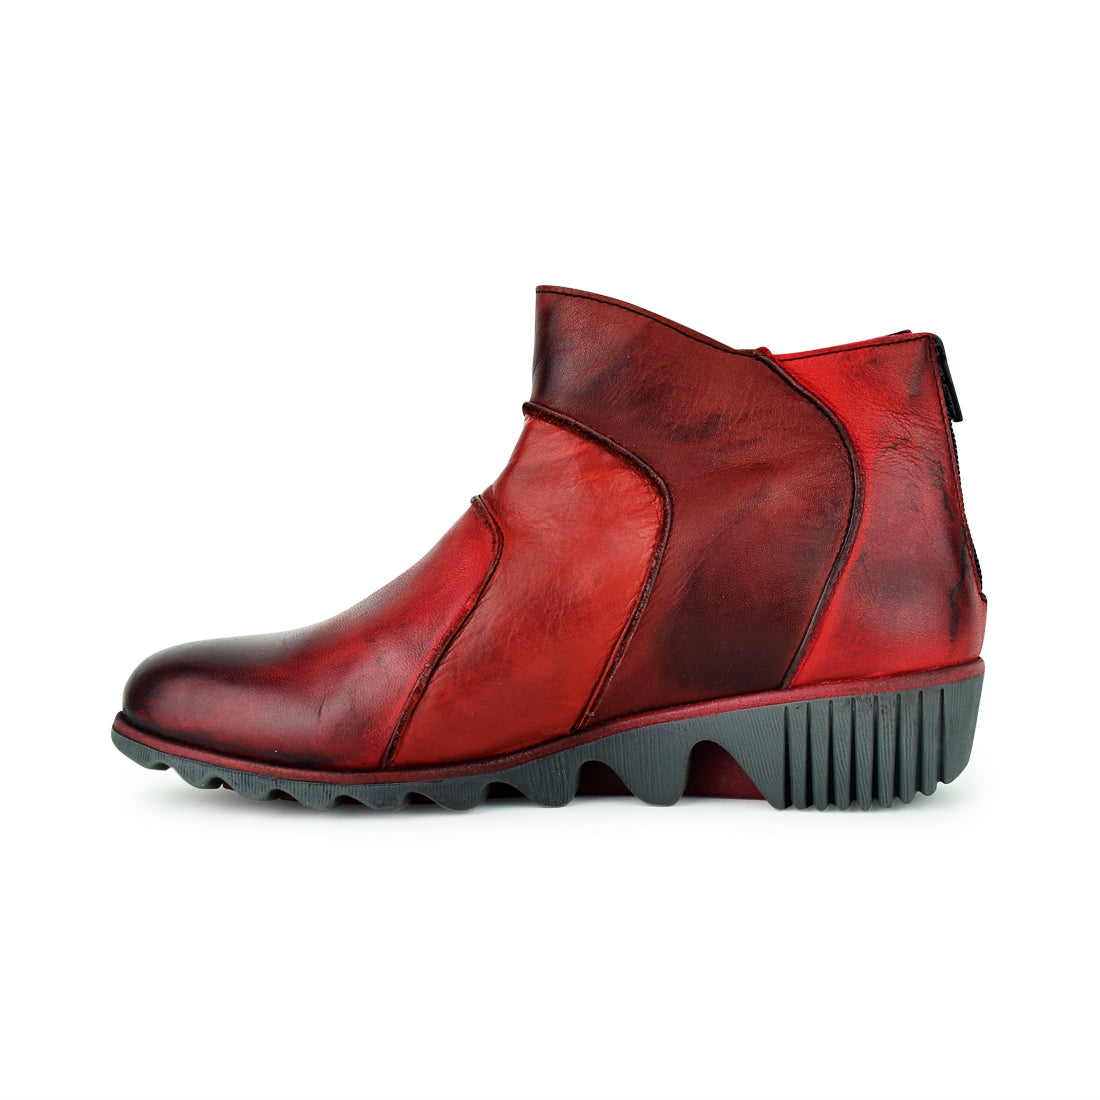 ABILENA - Clamp Ankle Boots Red